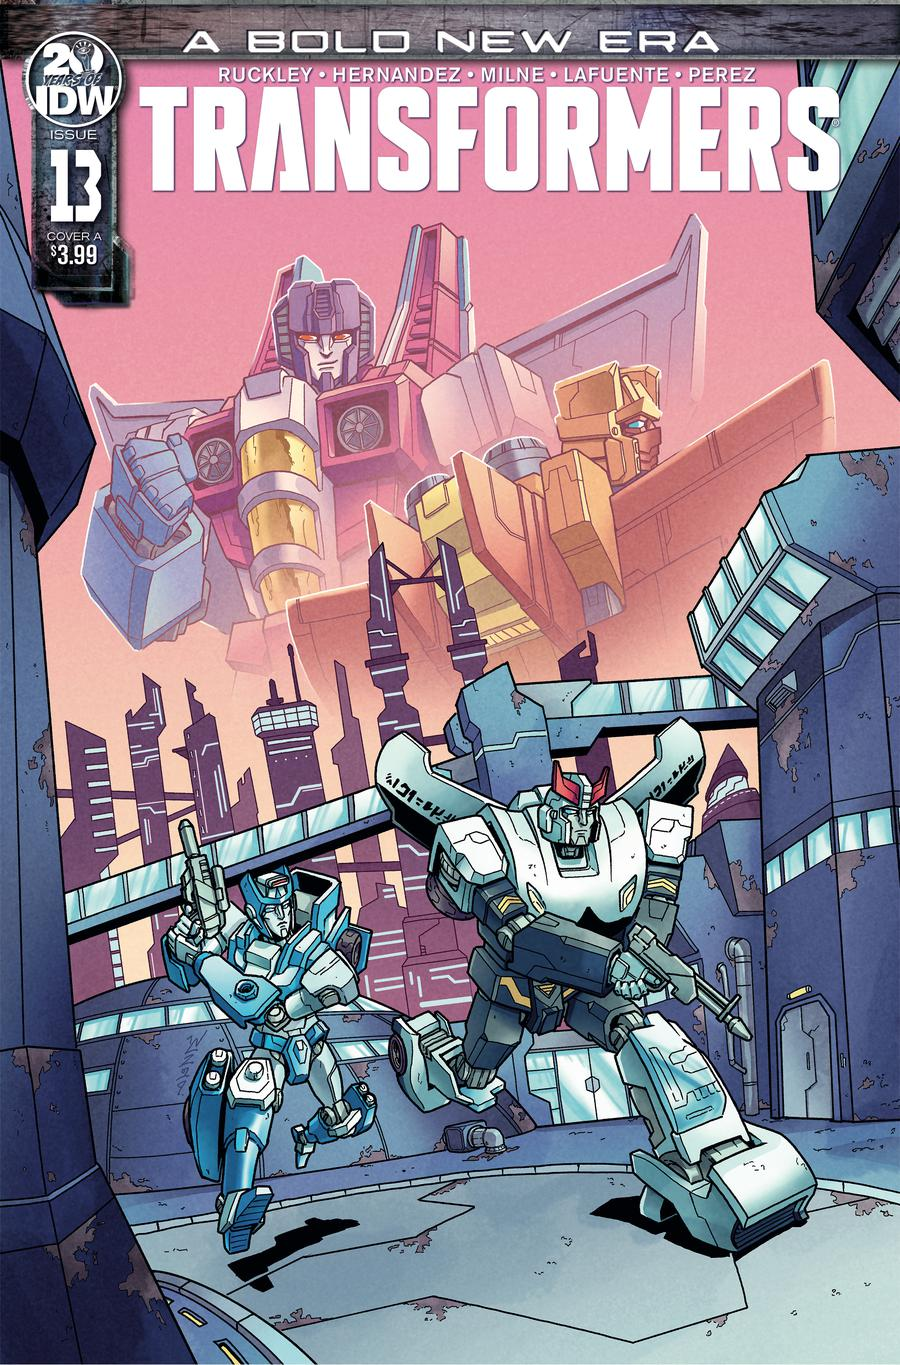 Transformers Vol 4 #13 Cover A Regular Winston Chan Cover